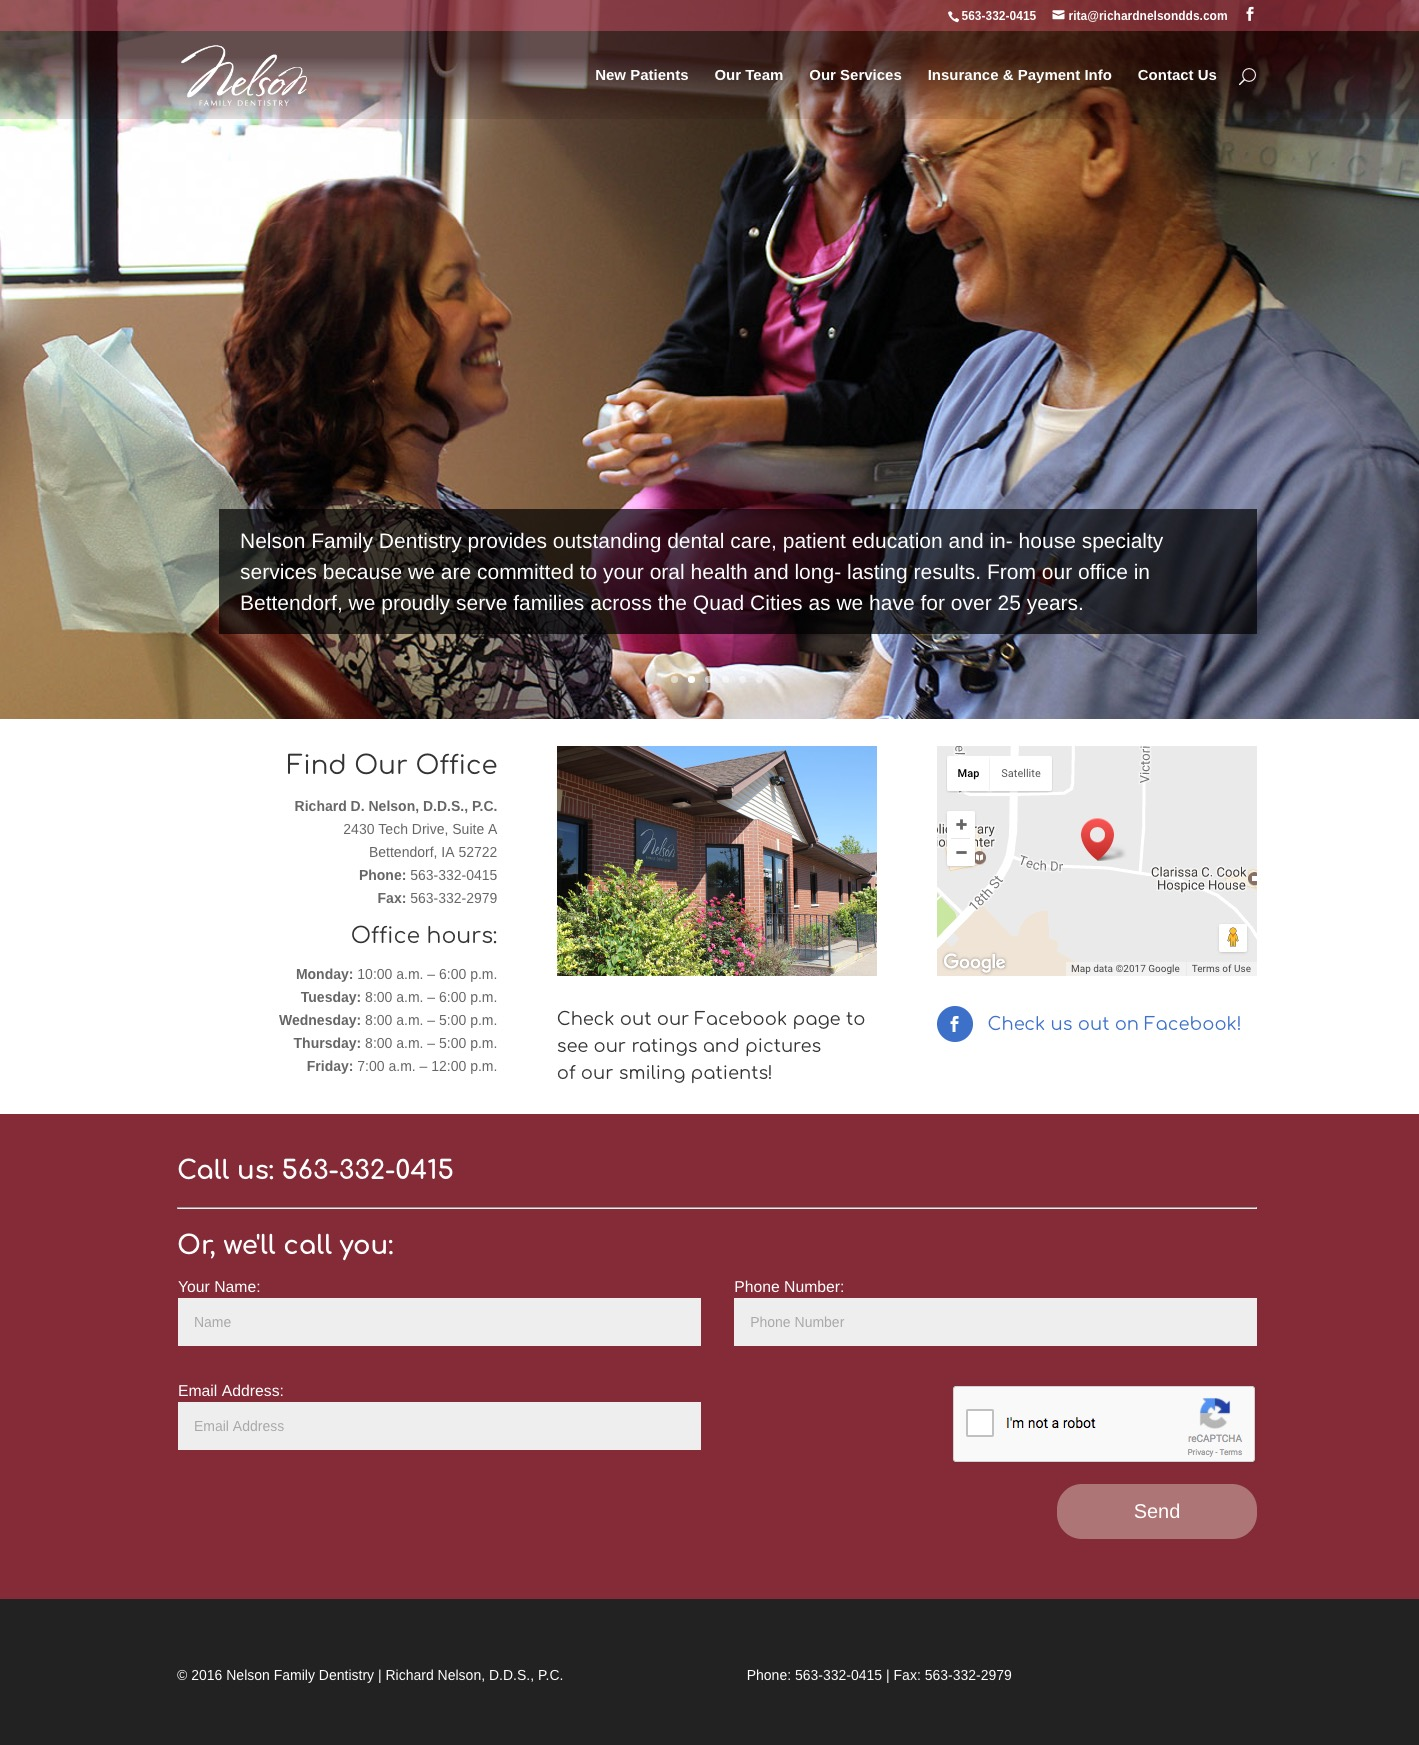 Nelson Family Dentistry home page screenshot